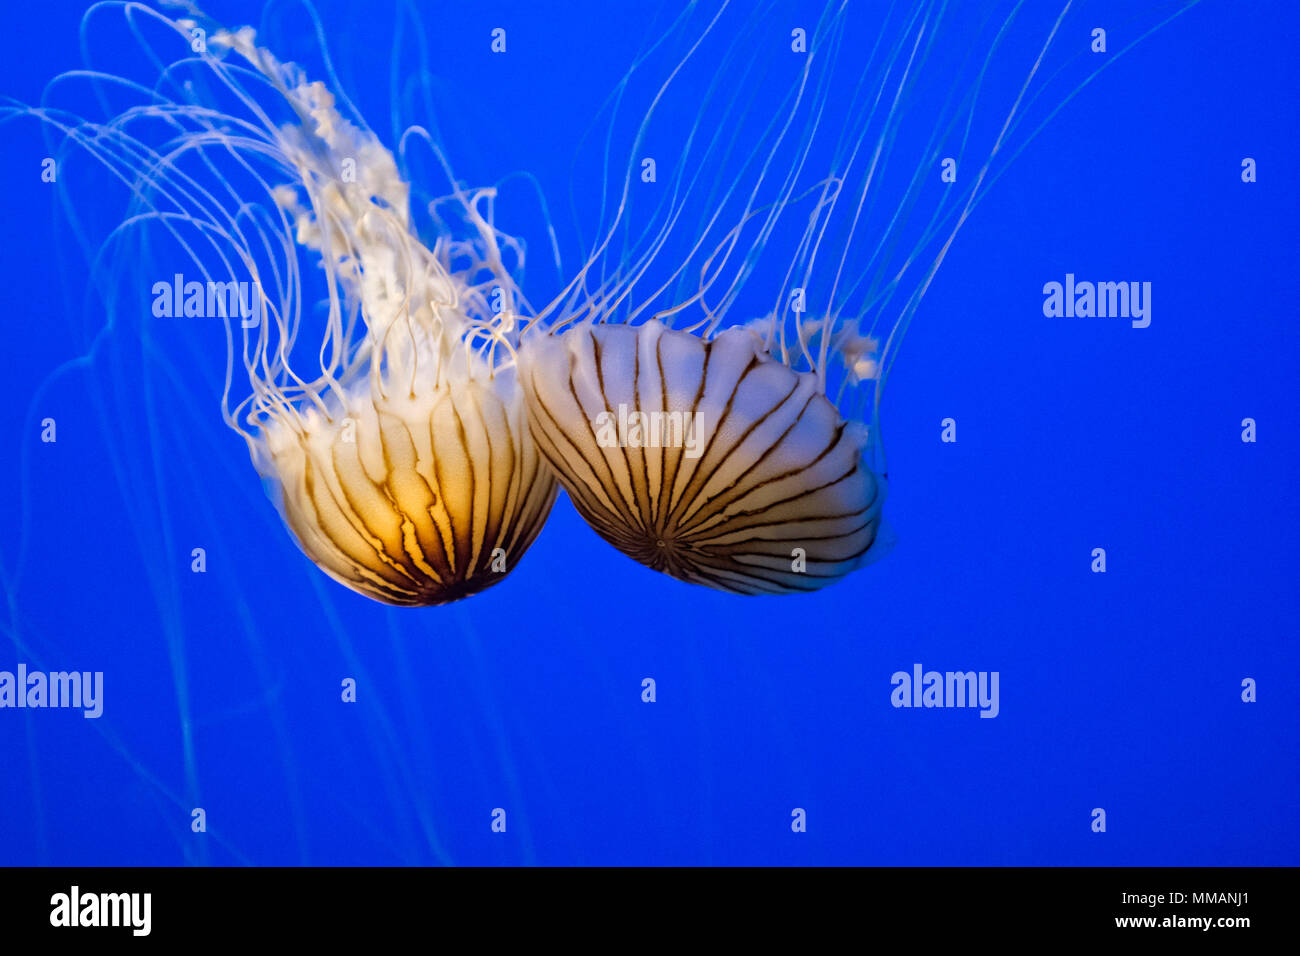 Two beautiful and graceful Sea Nettles swimming in blue water. - Stock Image